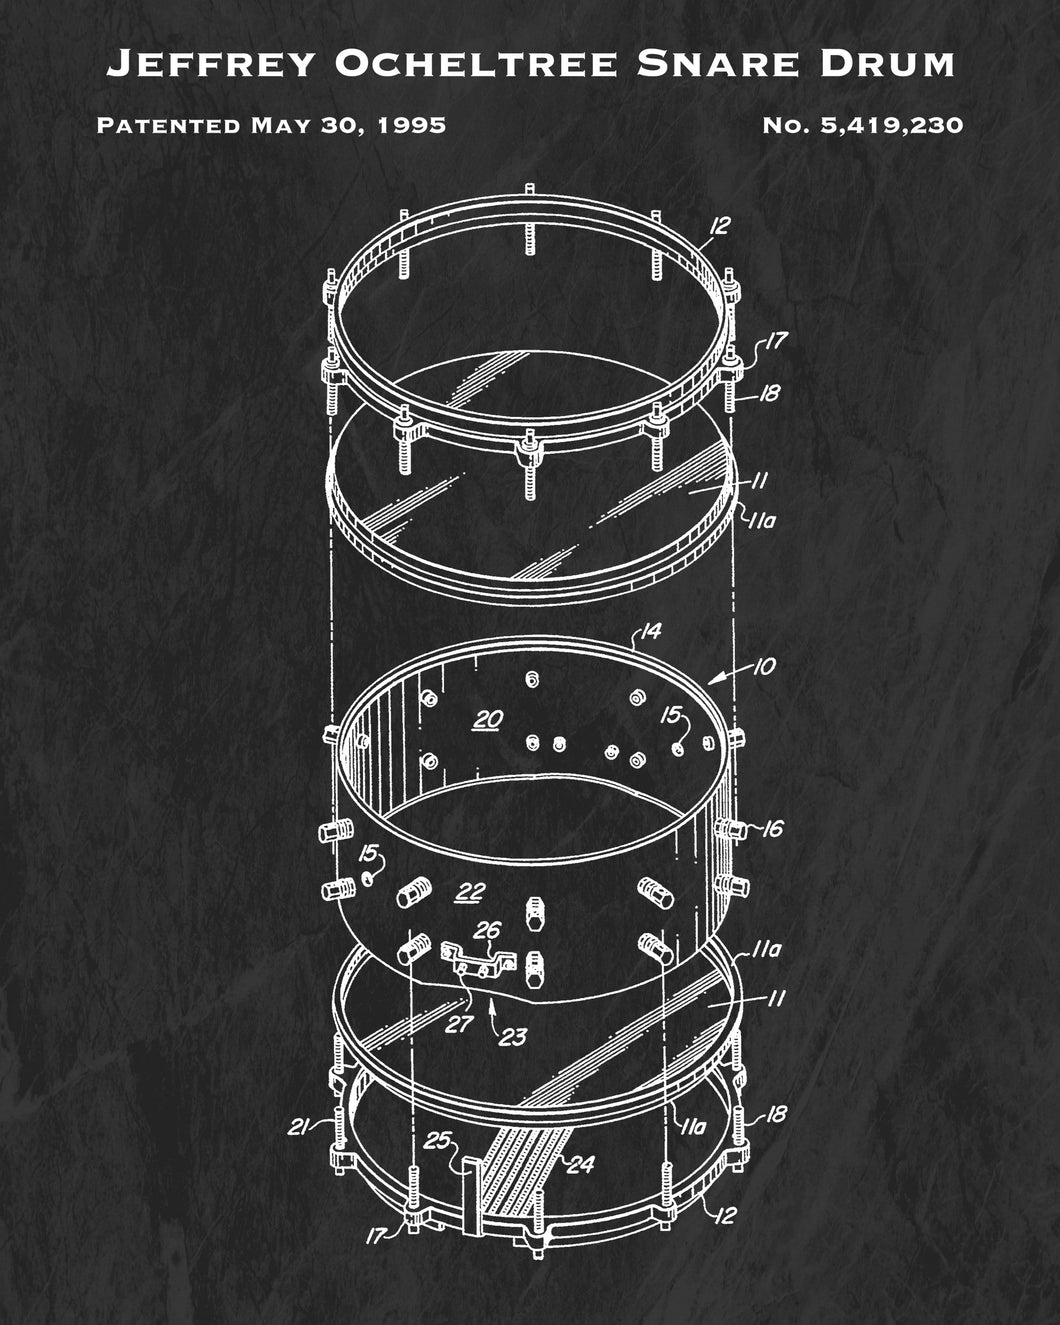 1995 Jeffrey Ocheltree Snare Drum Patent Art Print